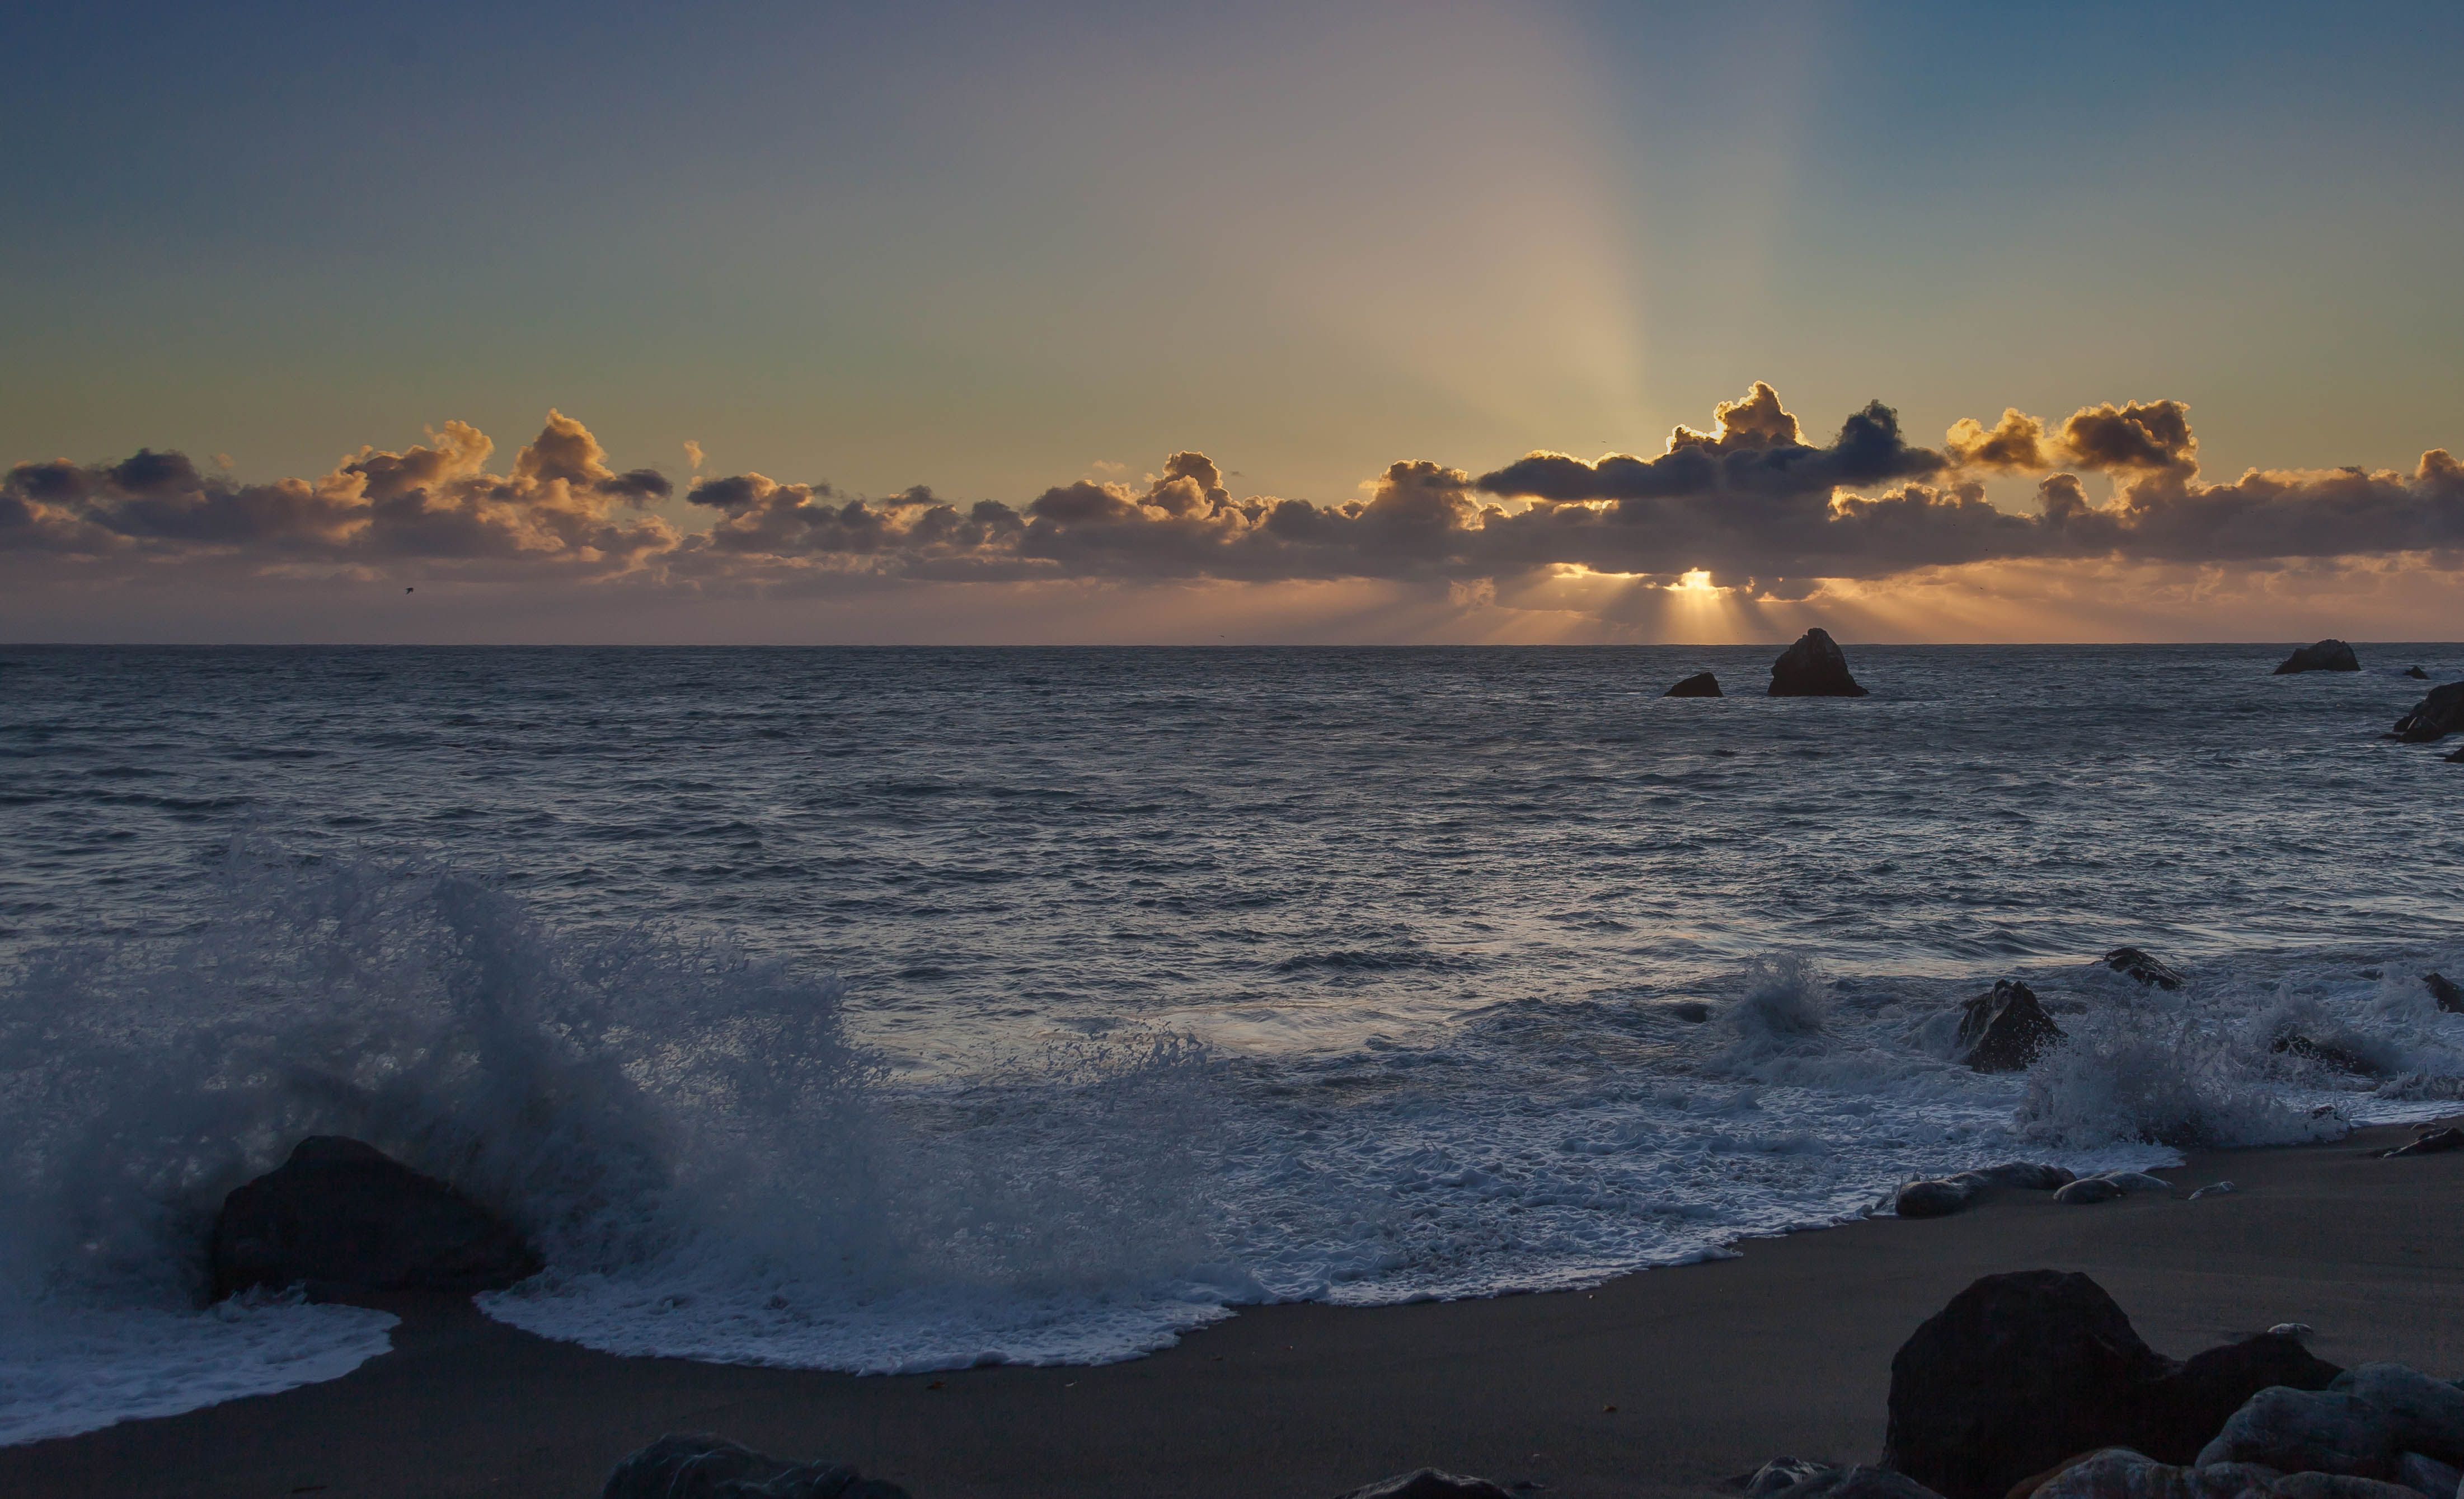 Sunset at Limekiln State Park, with a wave crashing on a rock